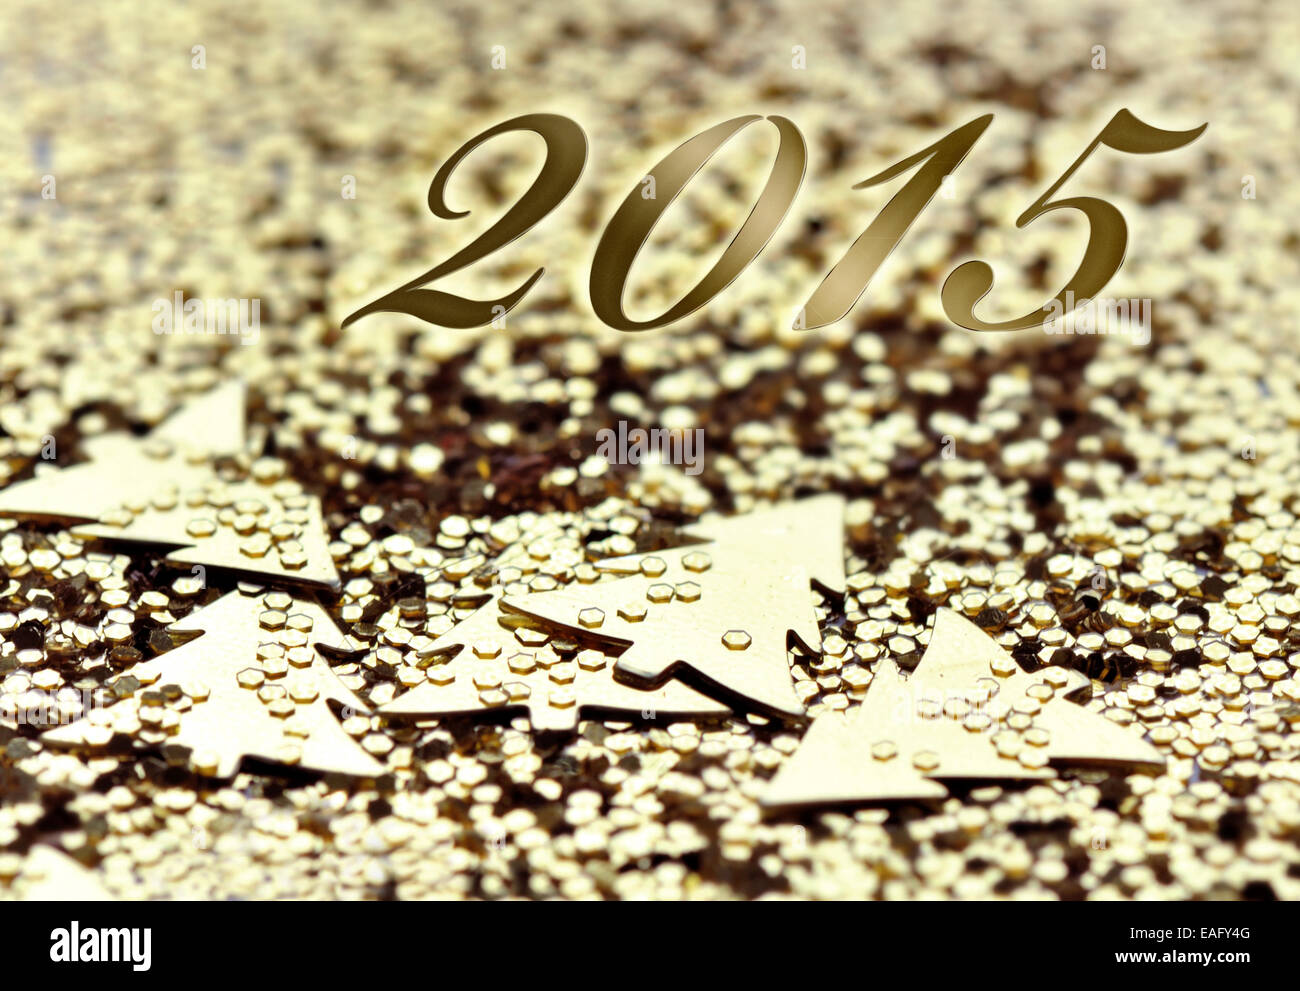 2015 on golden confettis and glitters background Stock Photo